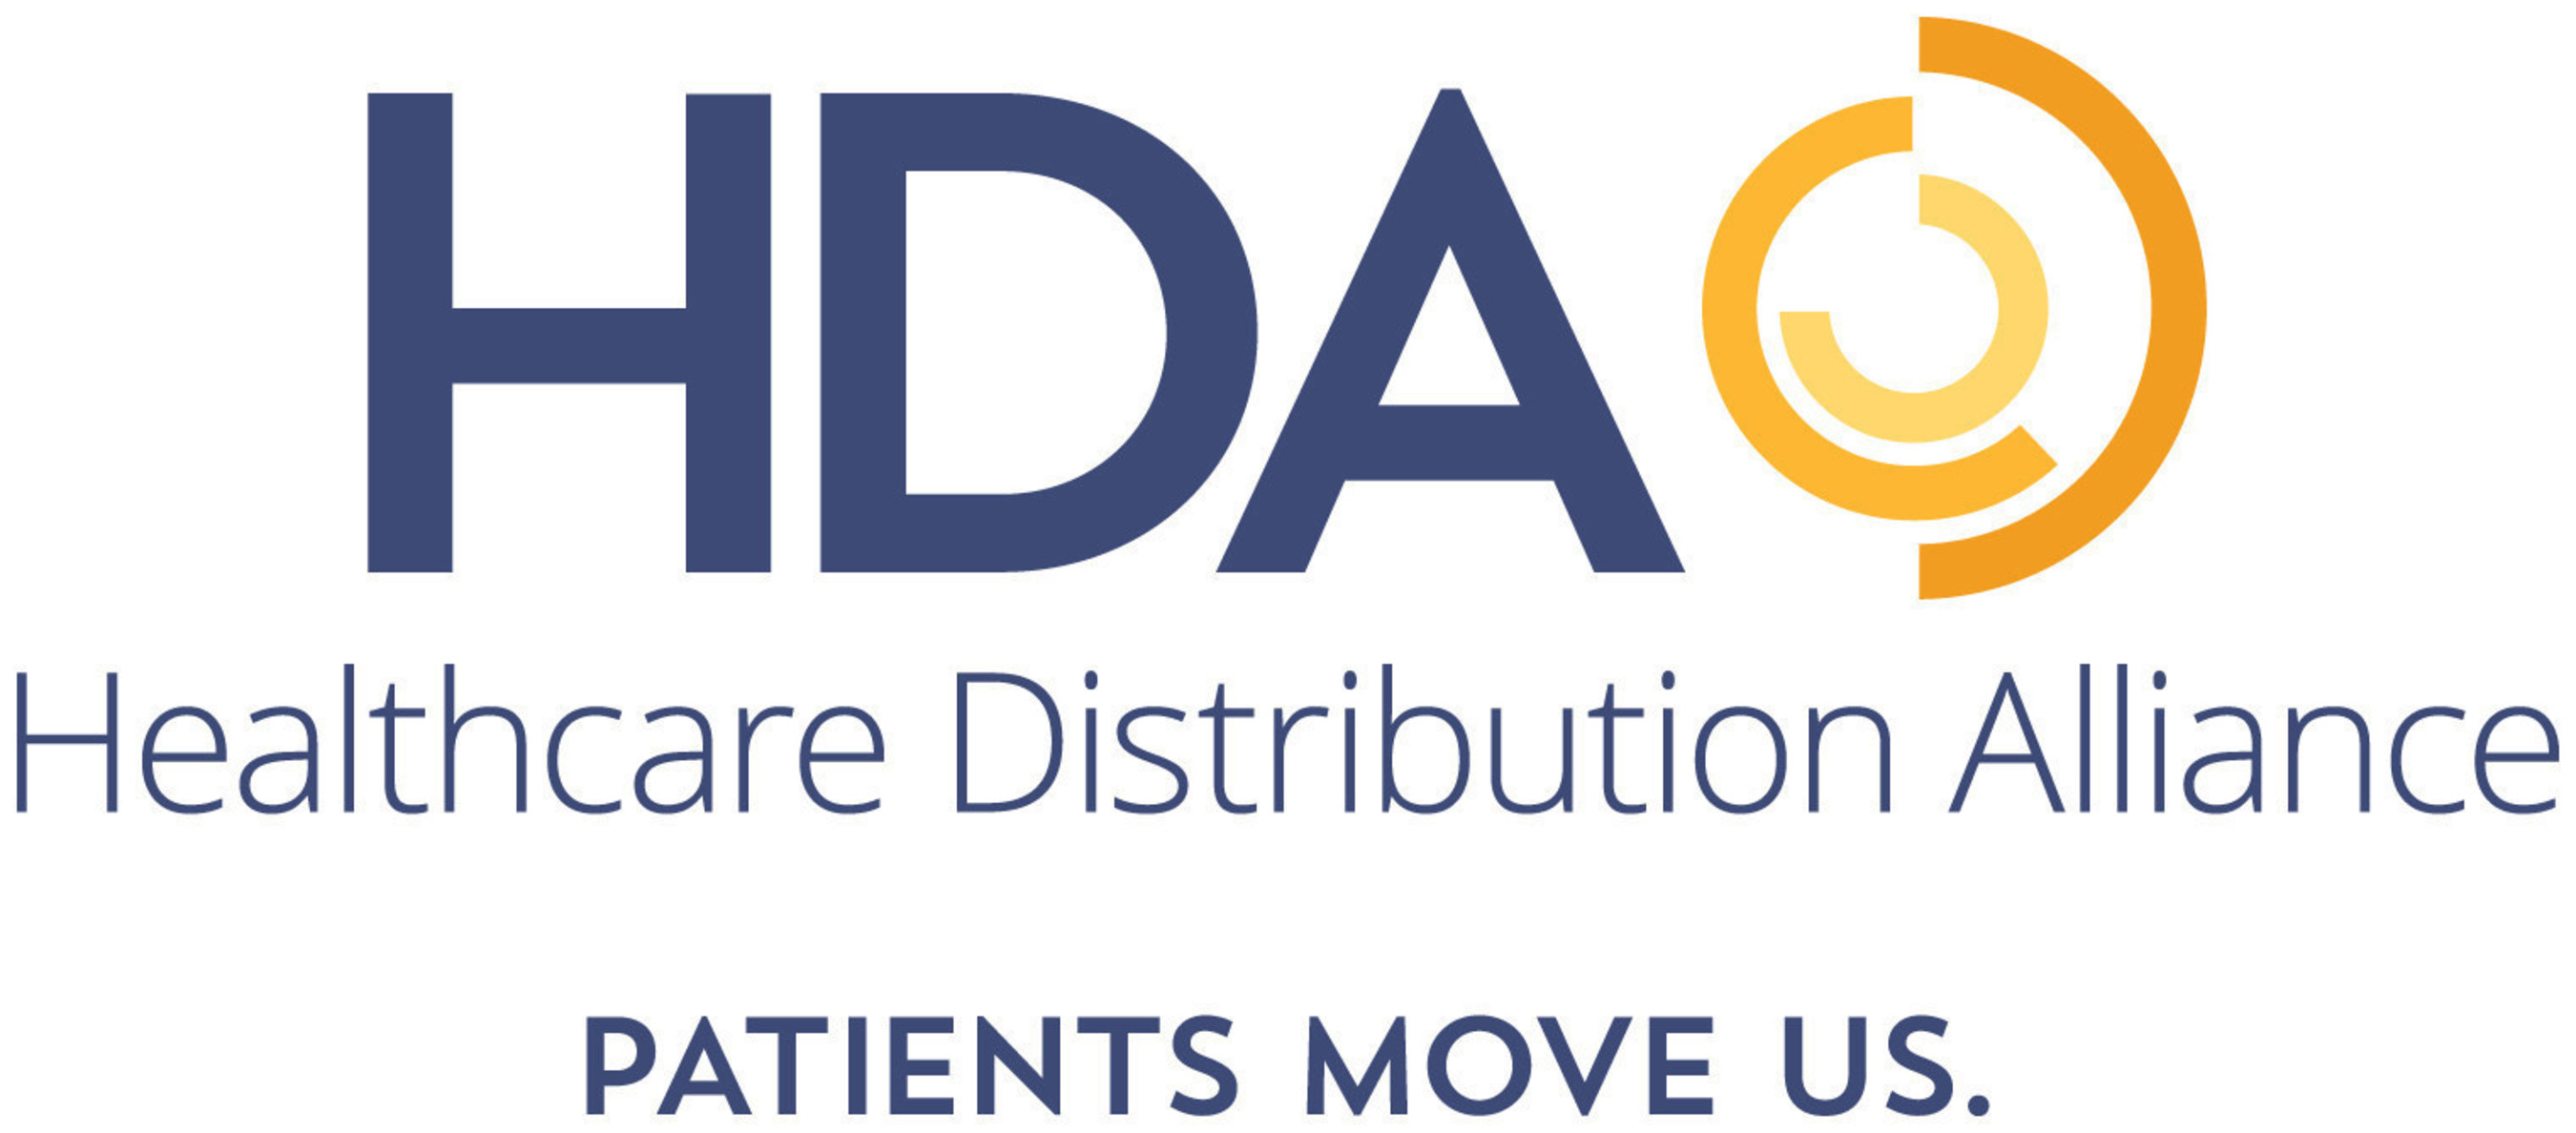 Healthcare Distribution Alliance logo for LSPediA-sponsored conference sessions.